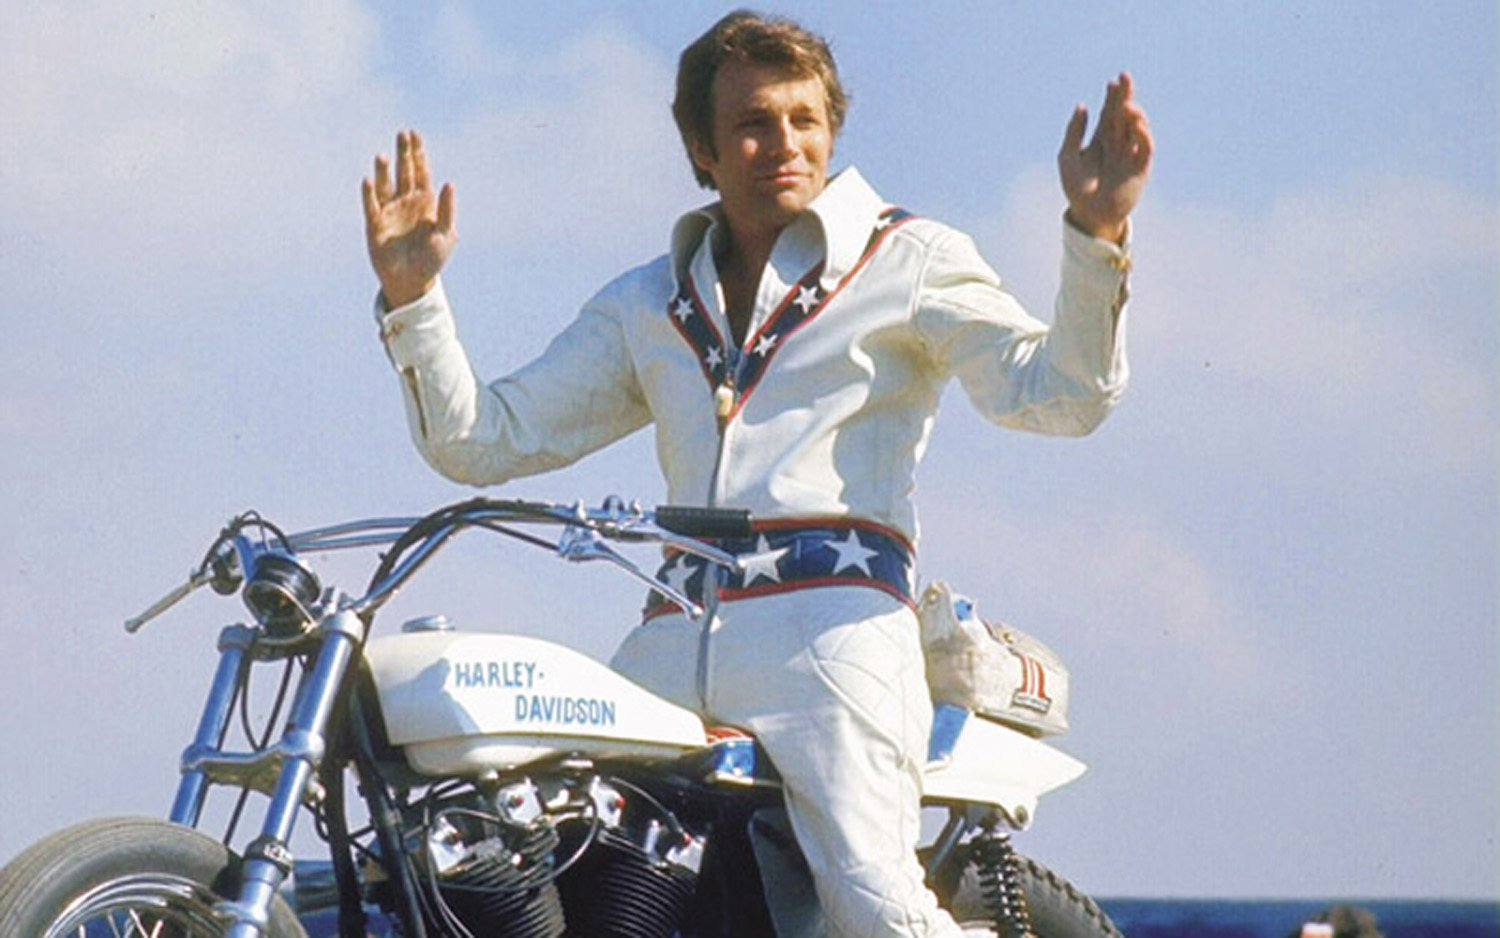 1500x938 - Evel Knievel Wallpapers 23